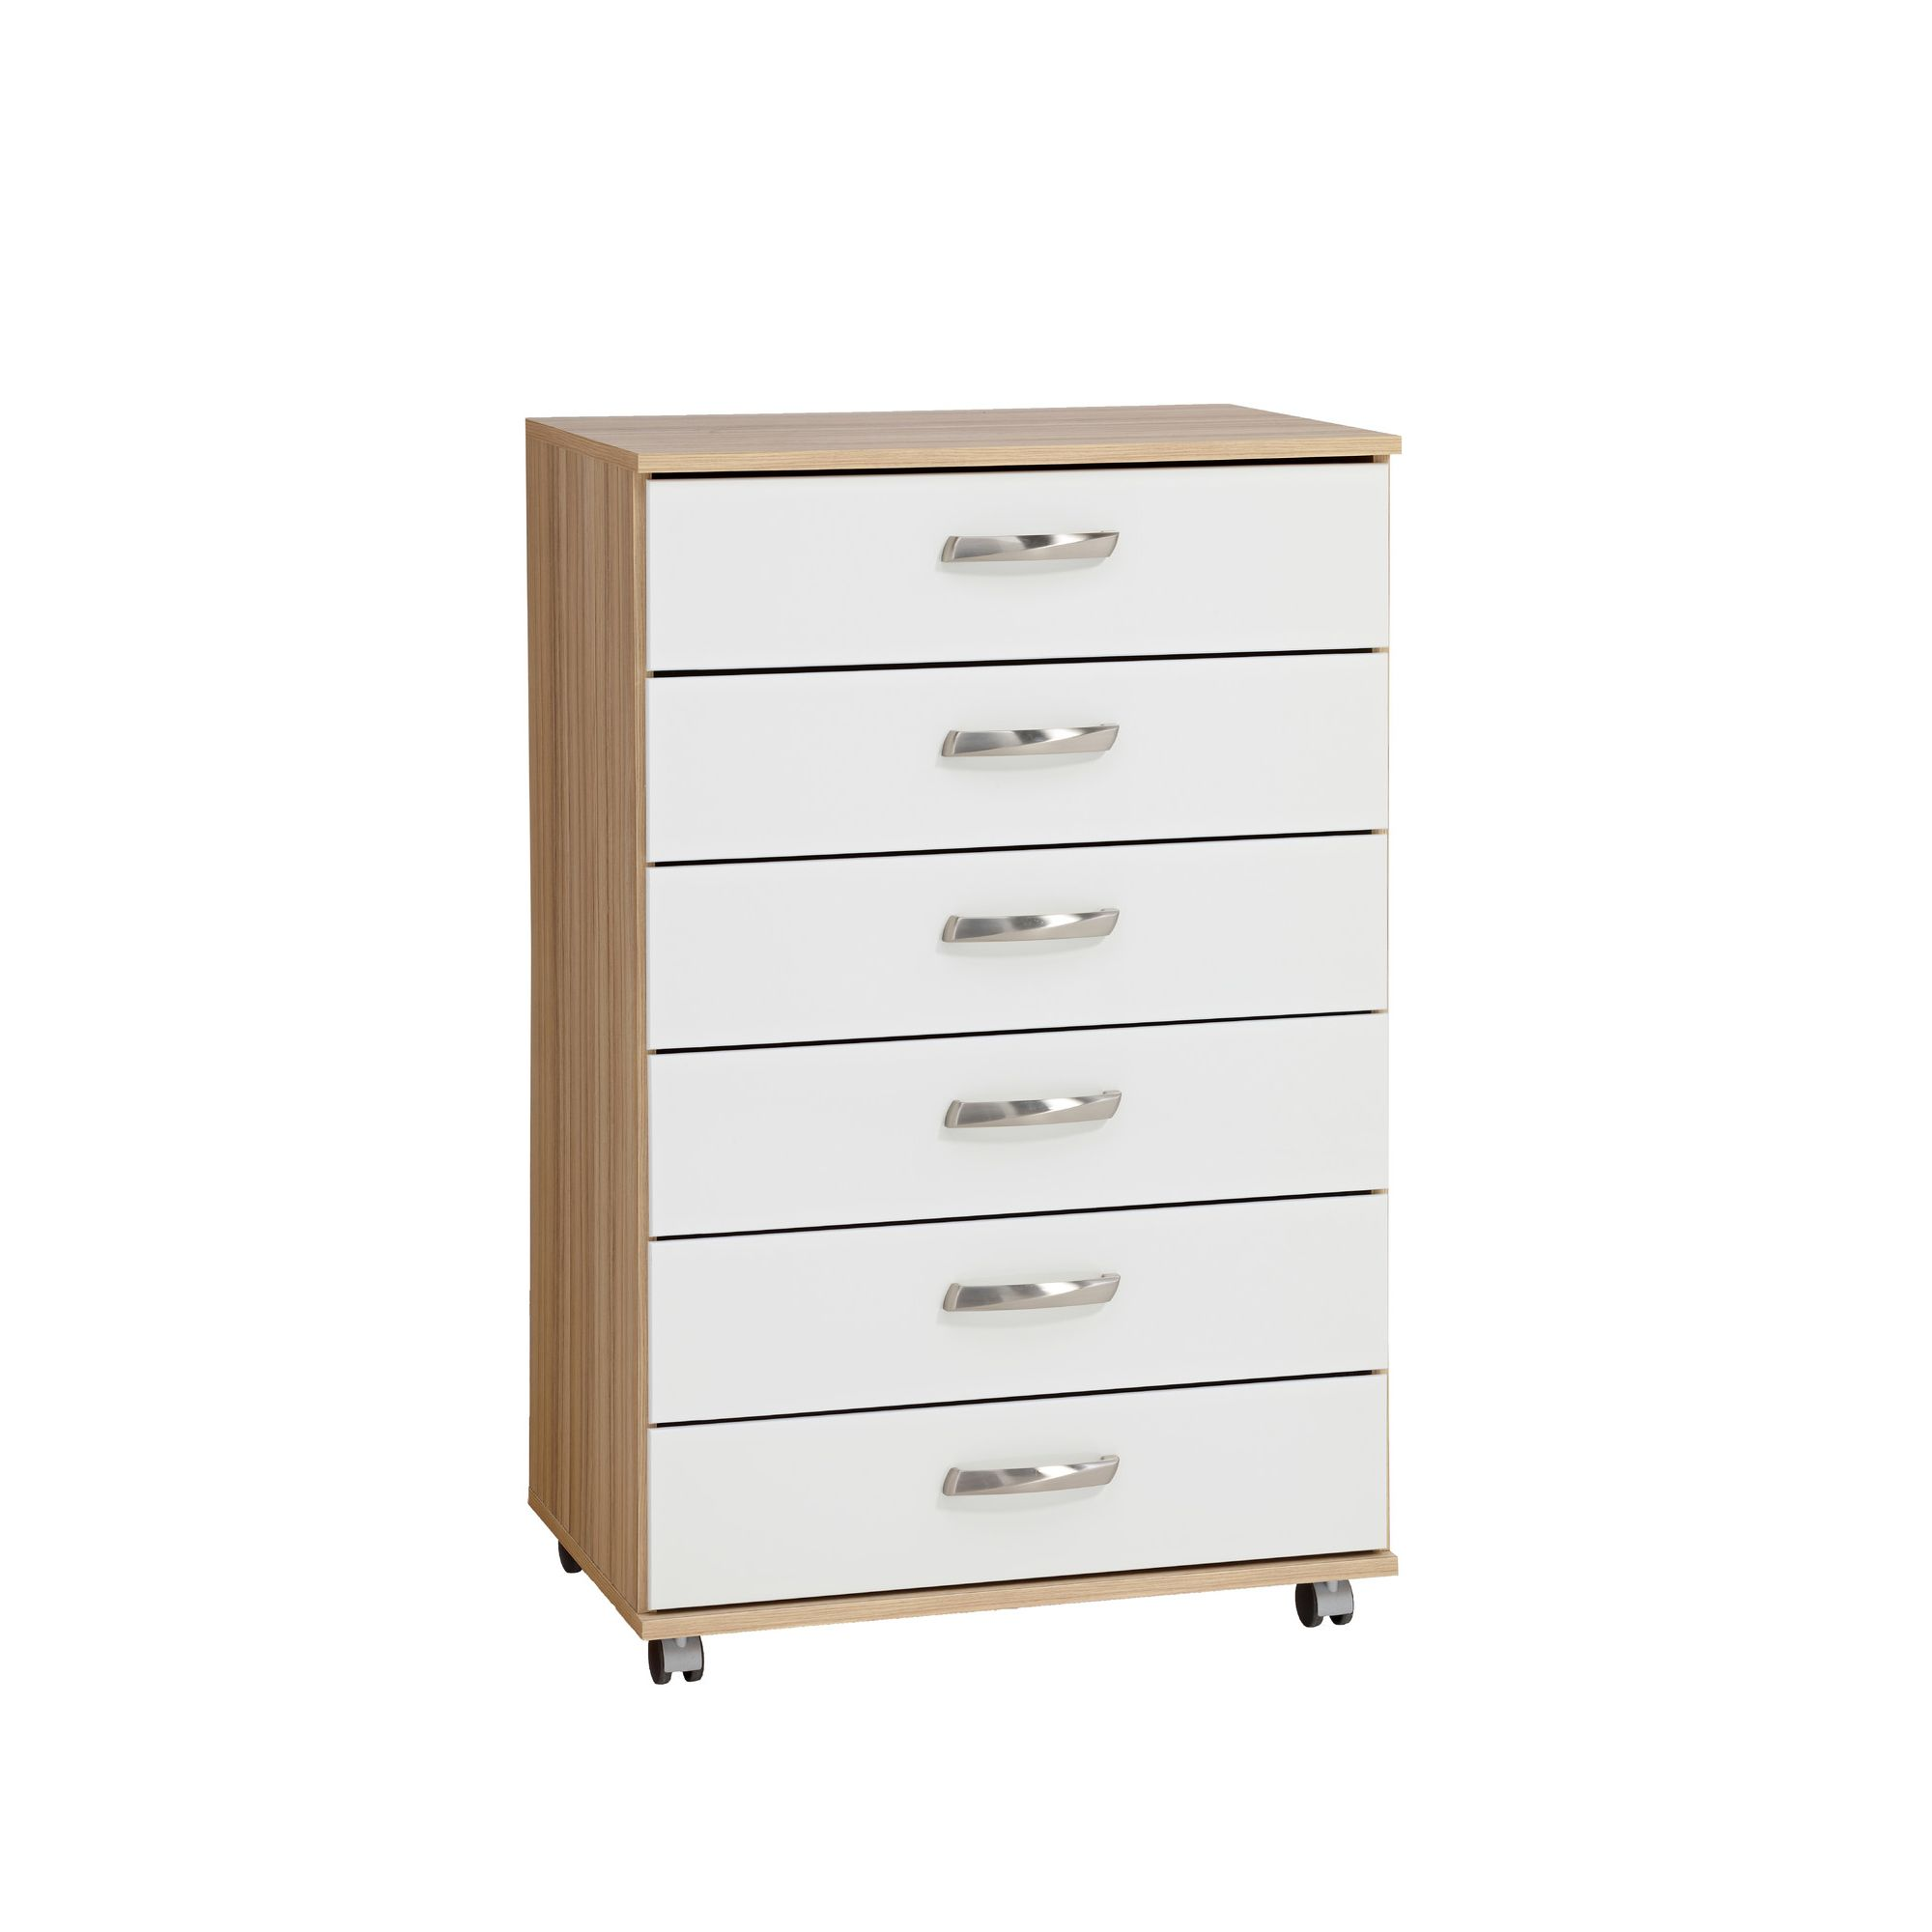 Ideal Furniture Regal 6 Drawer Chest in white at Tesco Direct